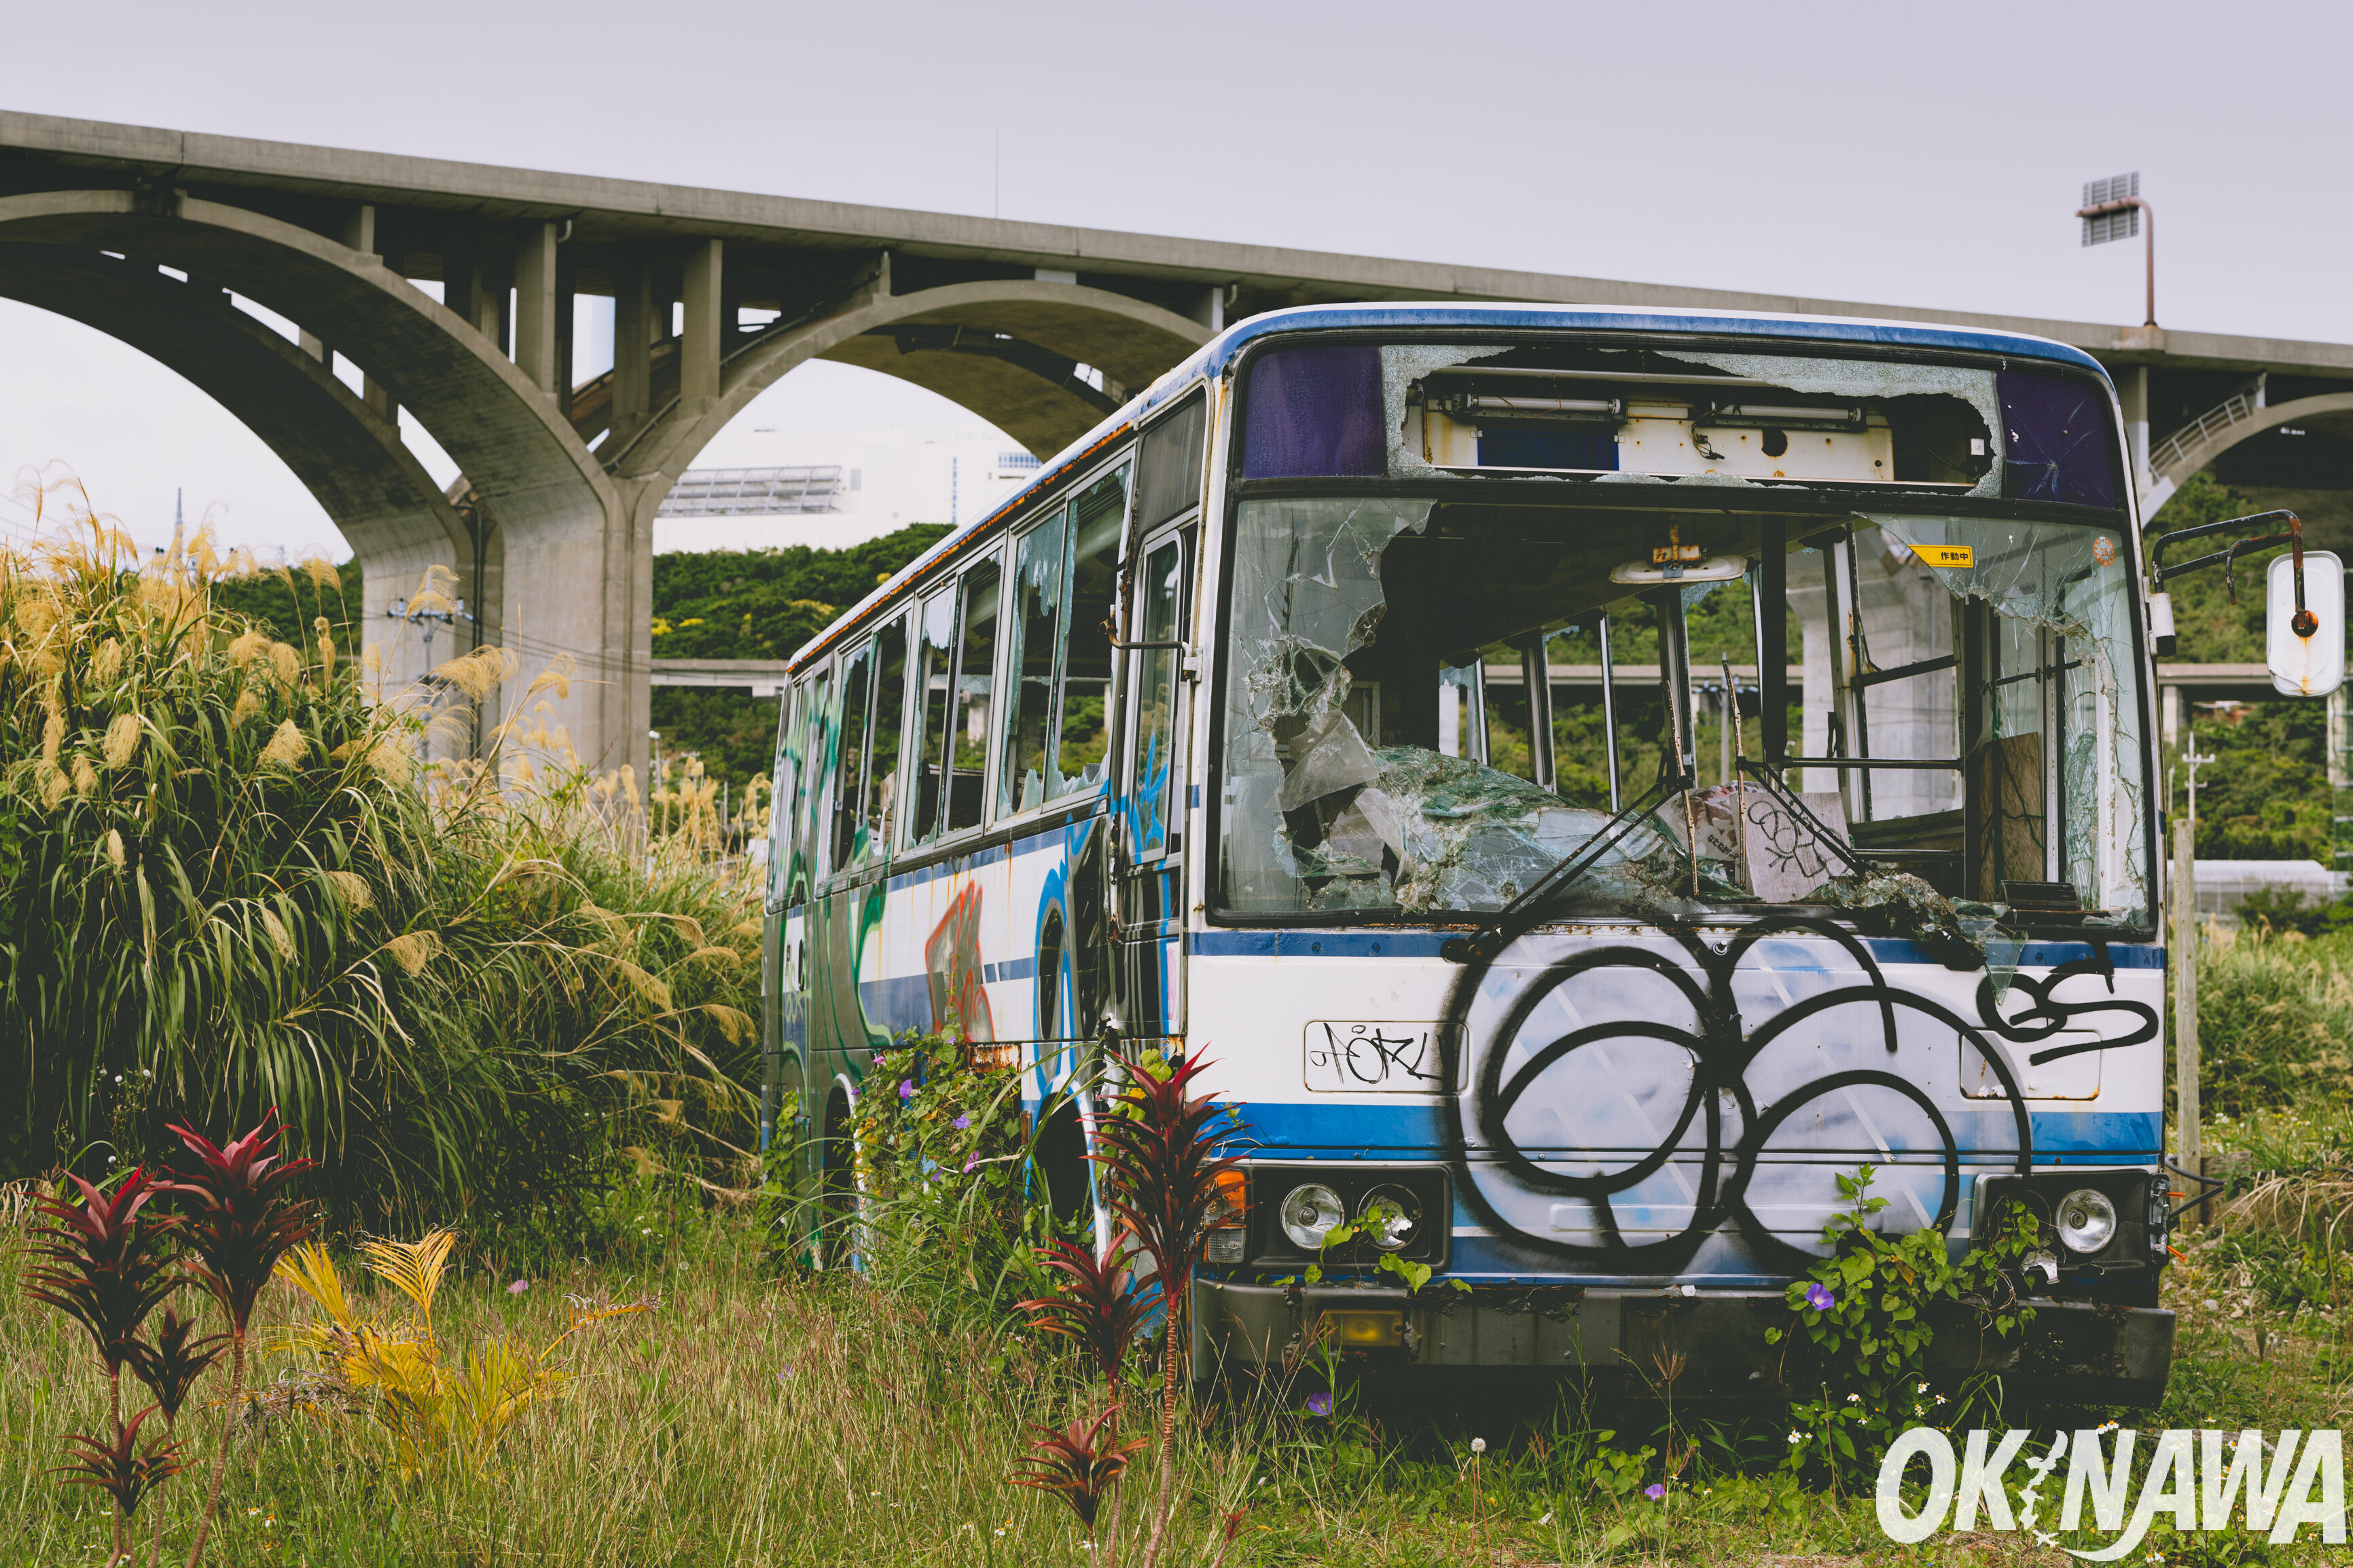 Ride The Bus In Okinawa